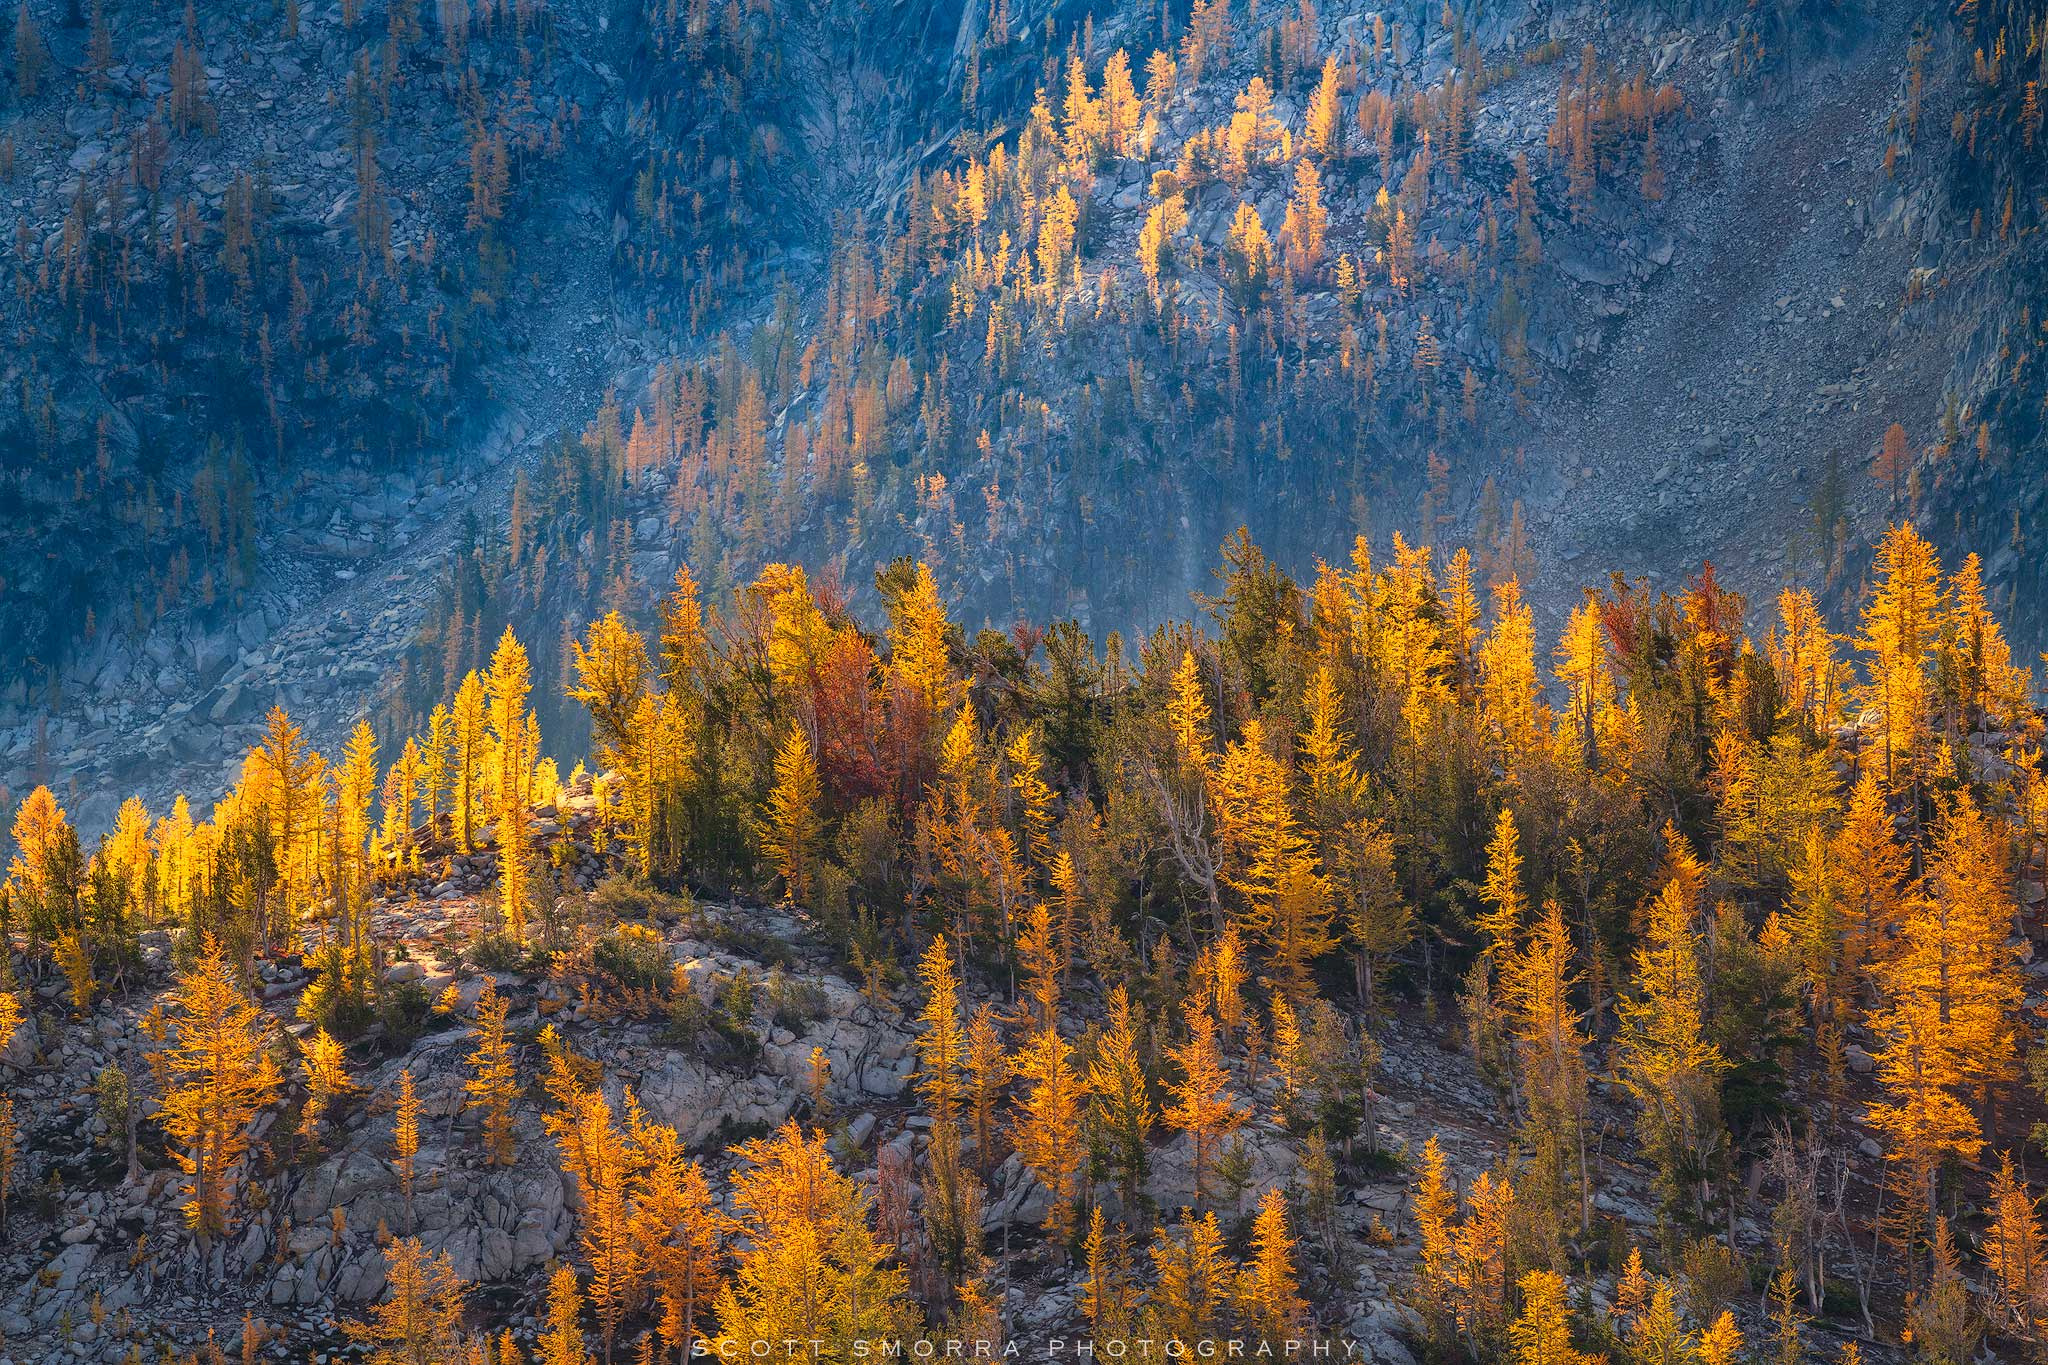 Fine Art Limited Edition of 25 - Early morning sunlight illuminates a forest of Western Larch (Larix occidentalis) trees in the...